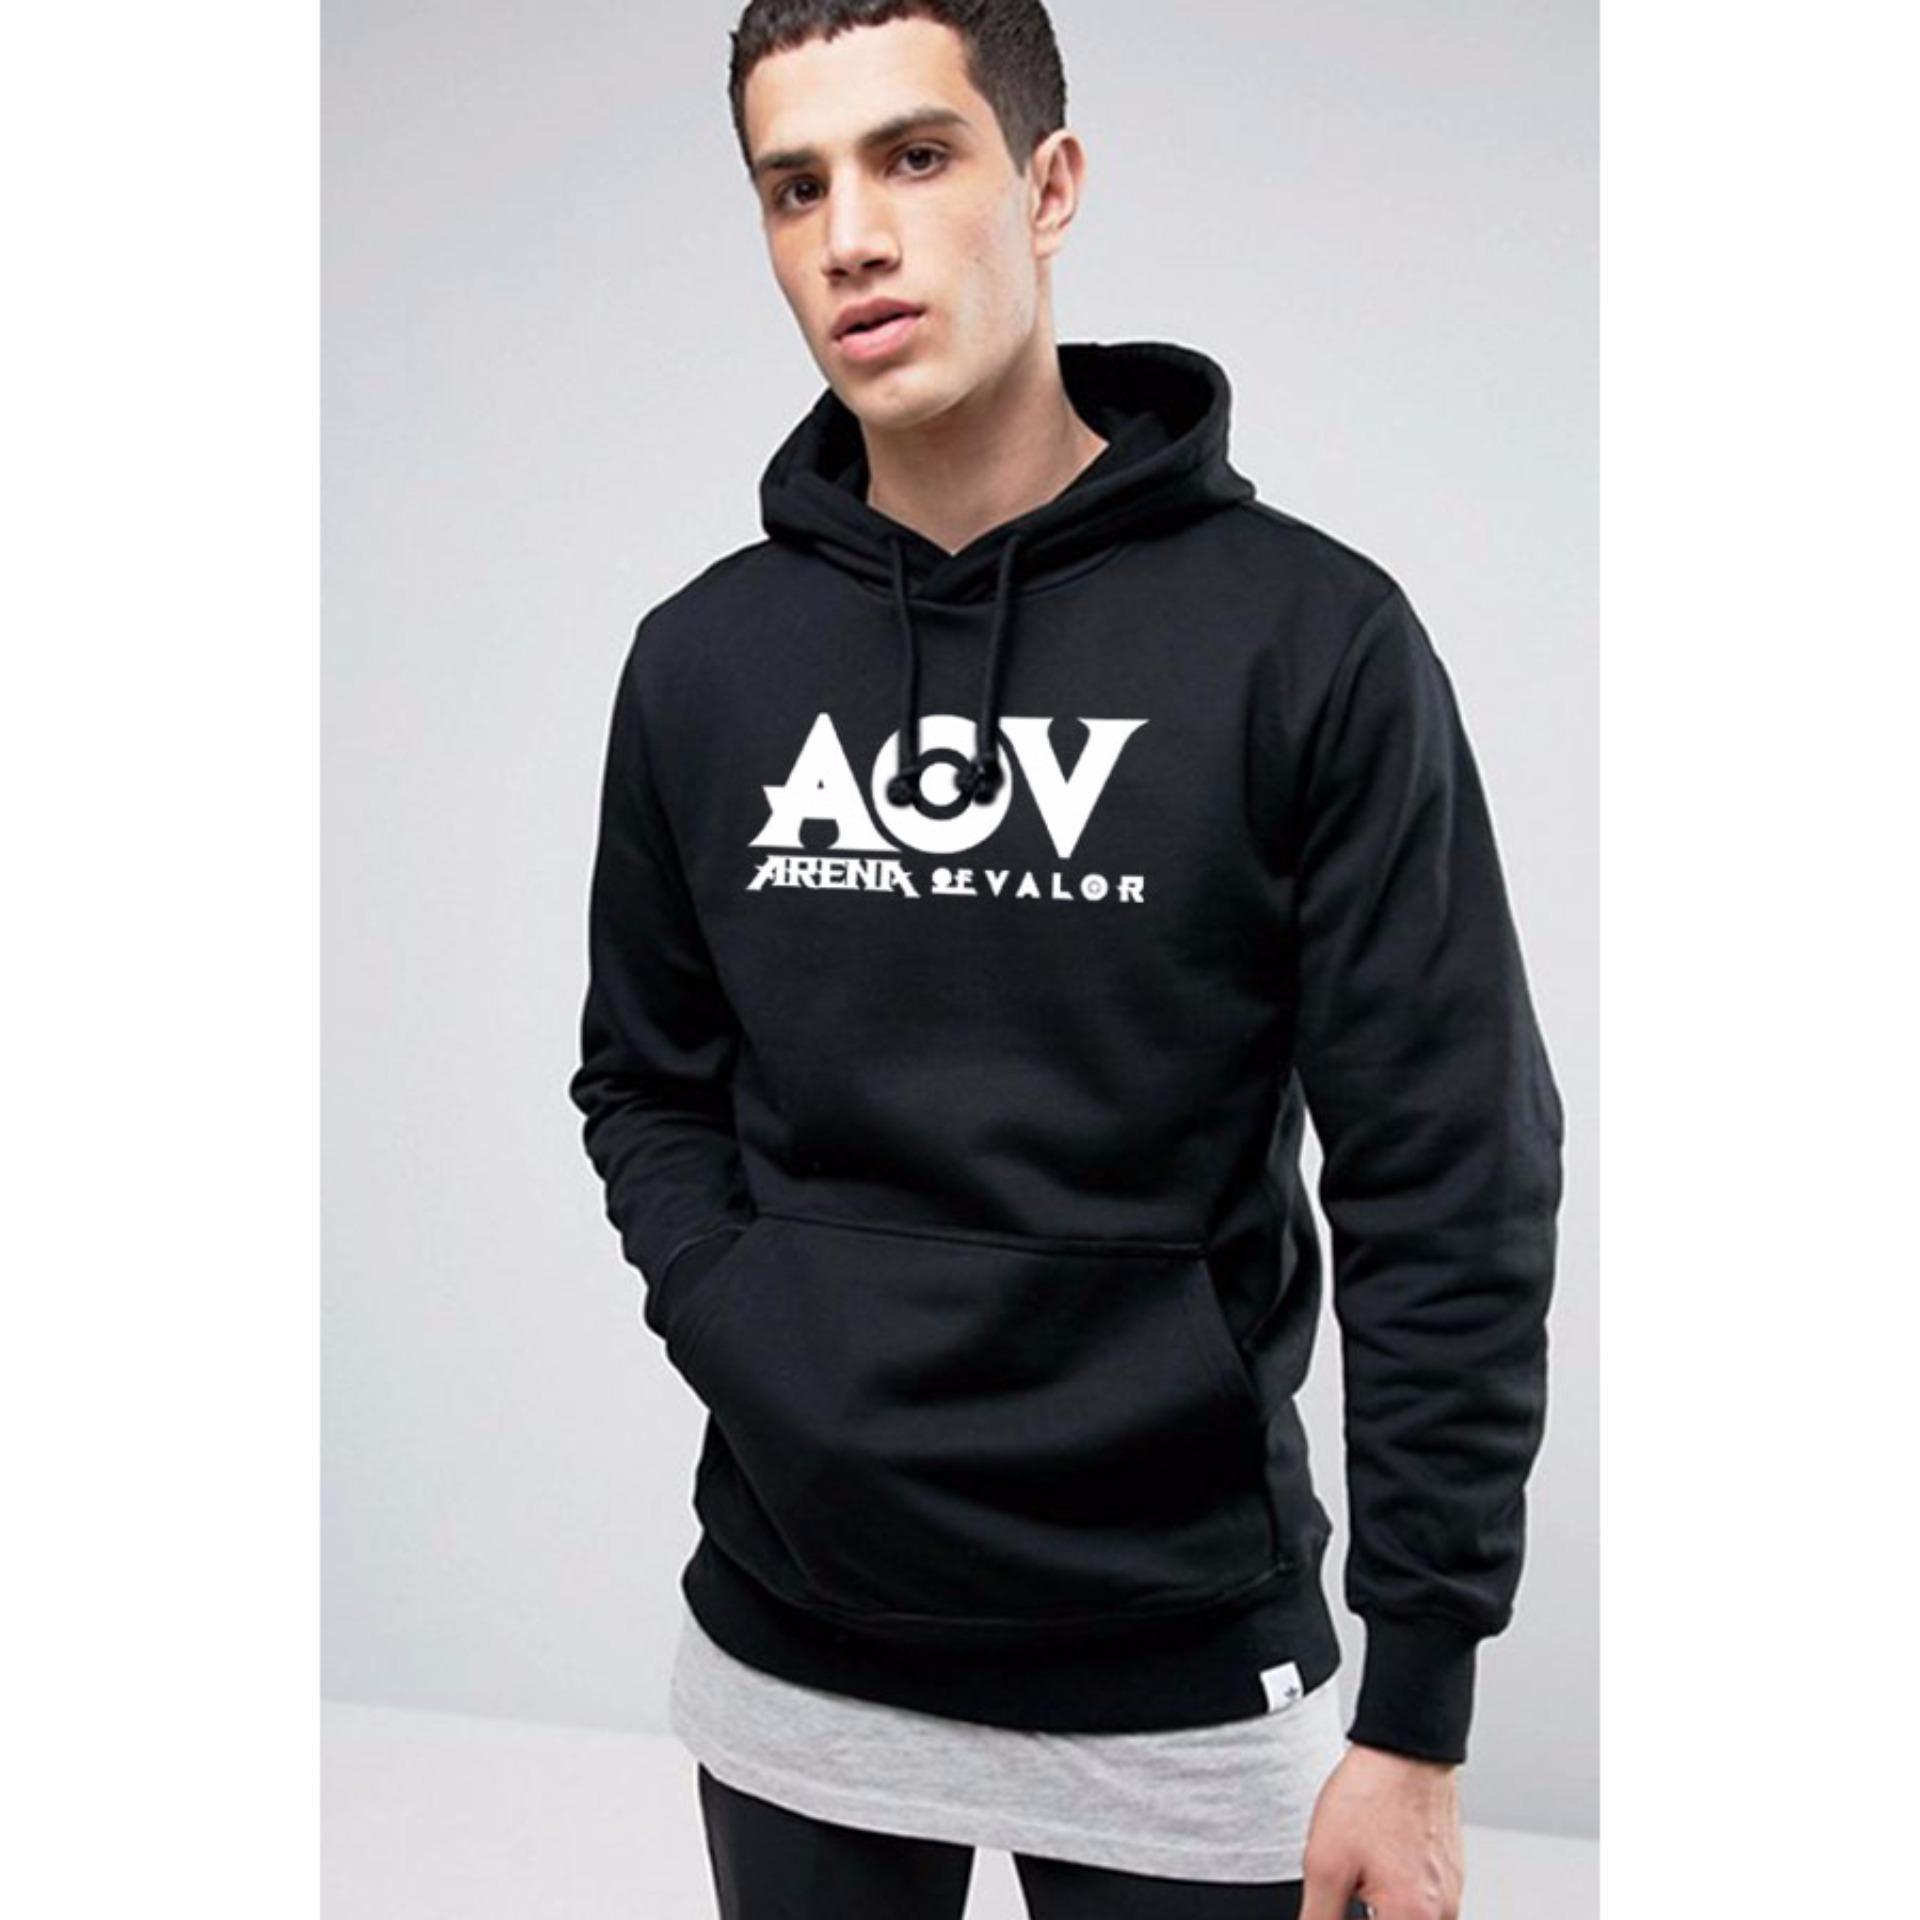 Spek Just Cloth Jaket Pullover Hoodie Gaming Aov Arena Of Valor Hitam Banten